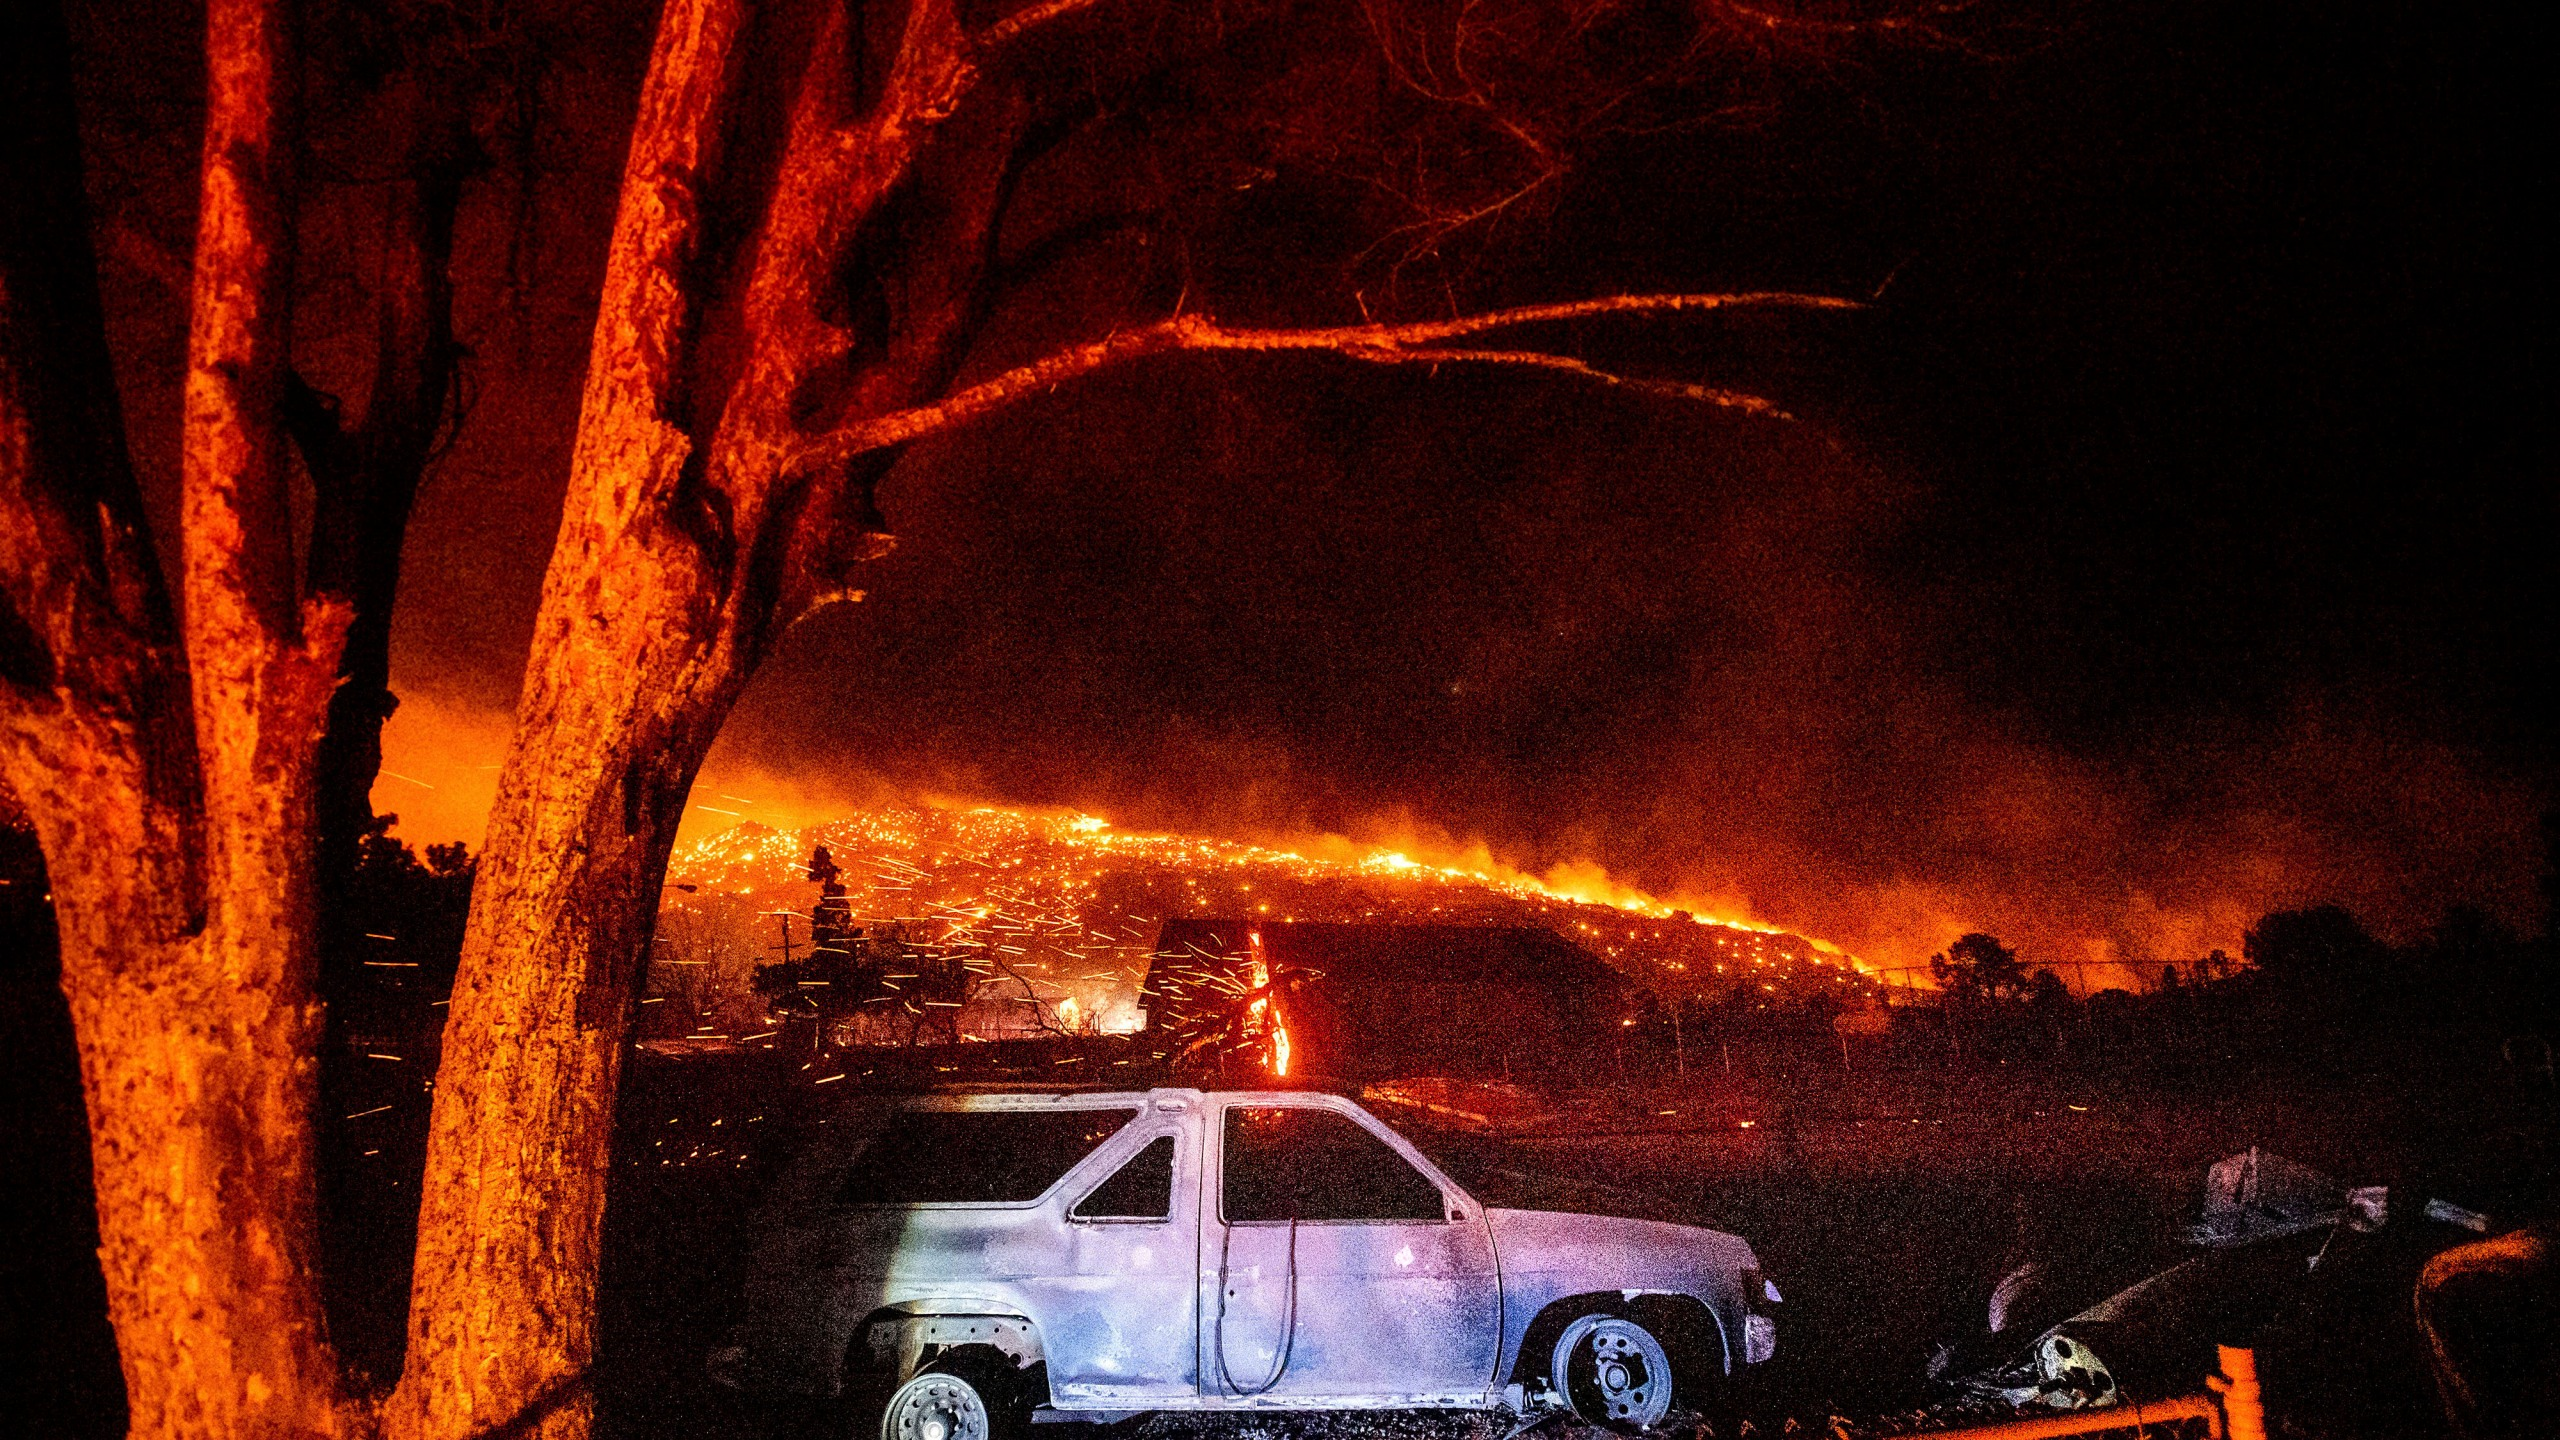 A scorched vehicle rests in a yard as the Mountain View Fire tears through the Walker community in Mono County, on Tuesday, Nov. 17, 2020. (AP Photo/Noah Berger)